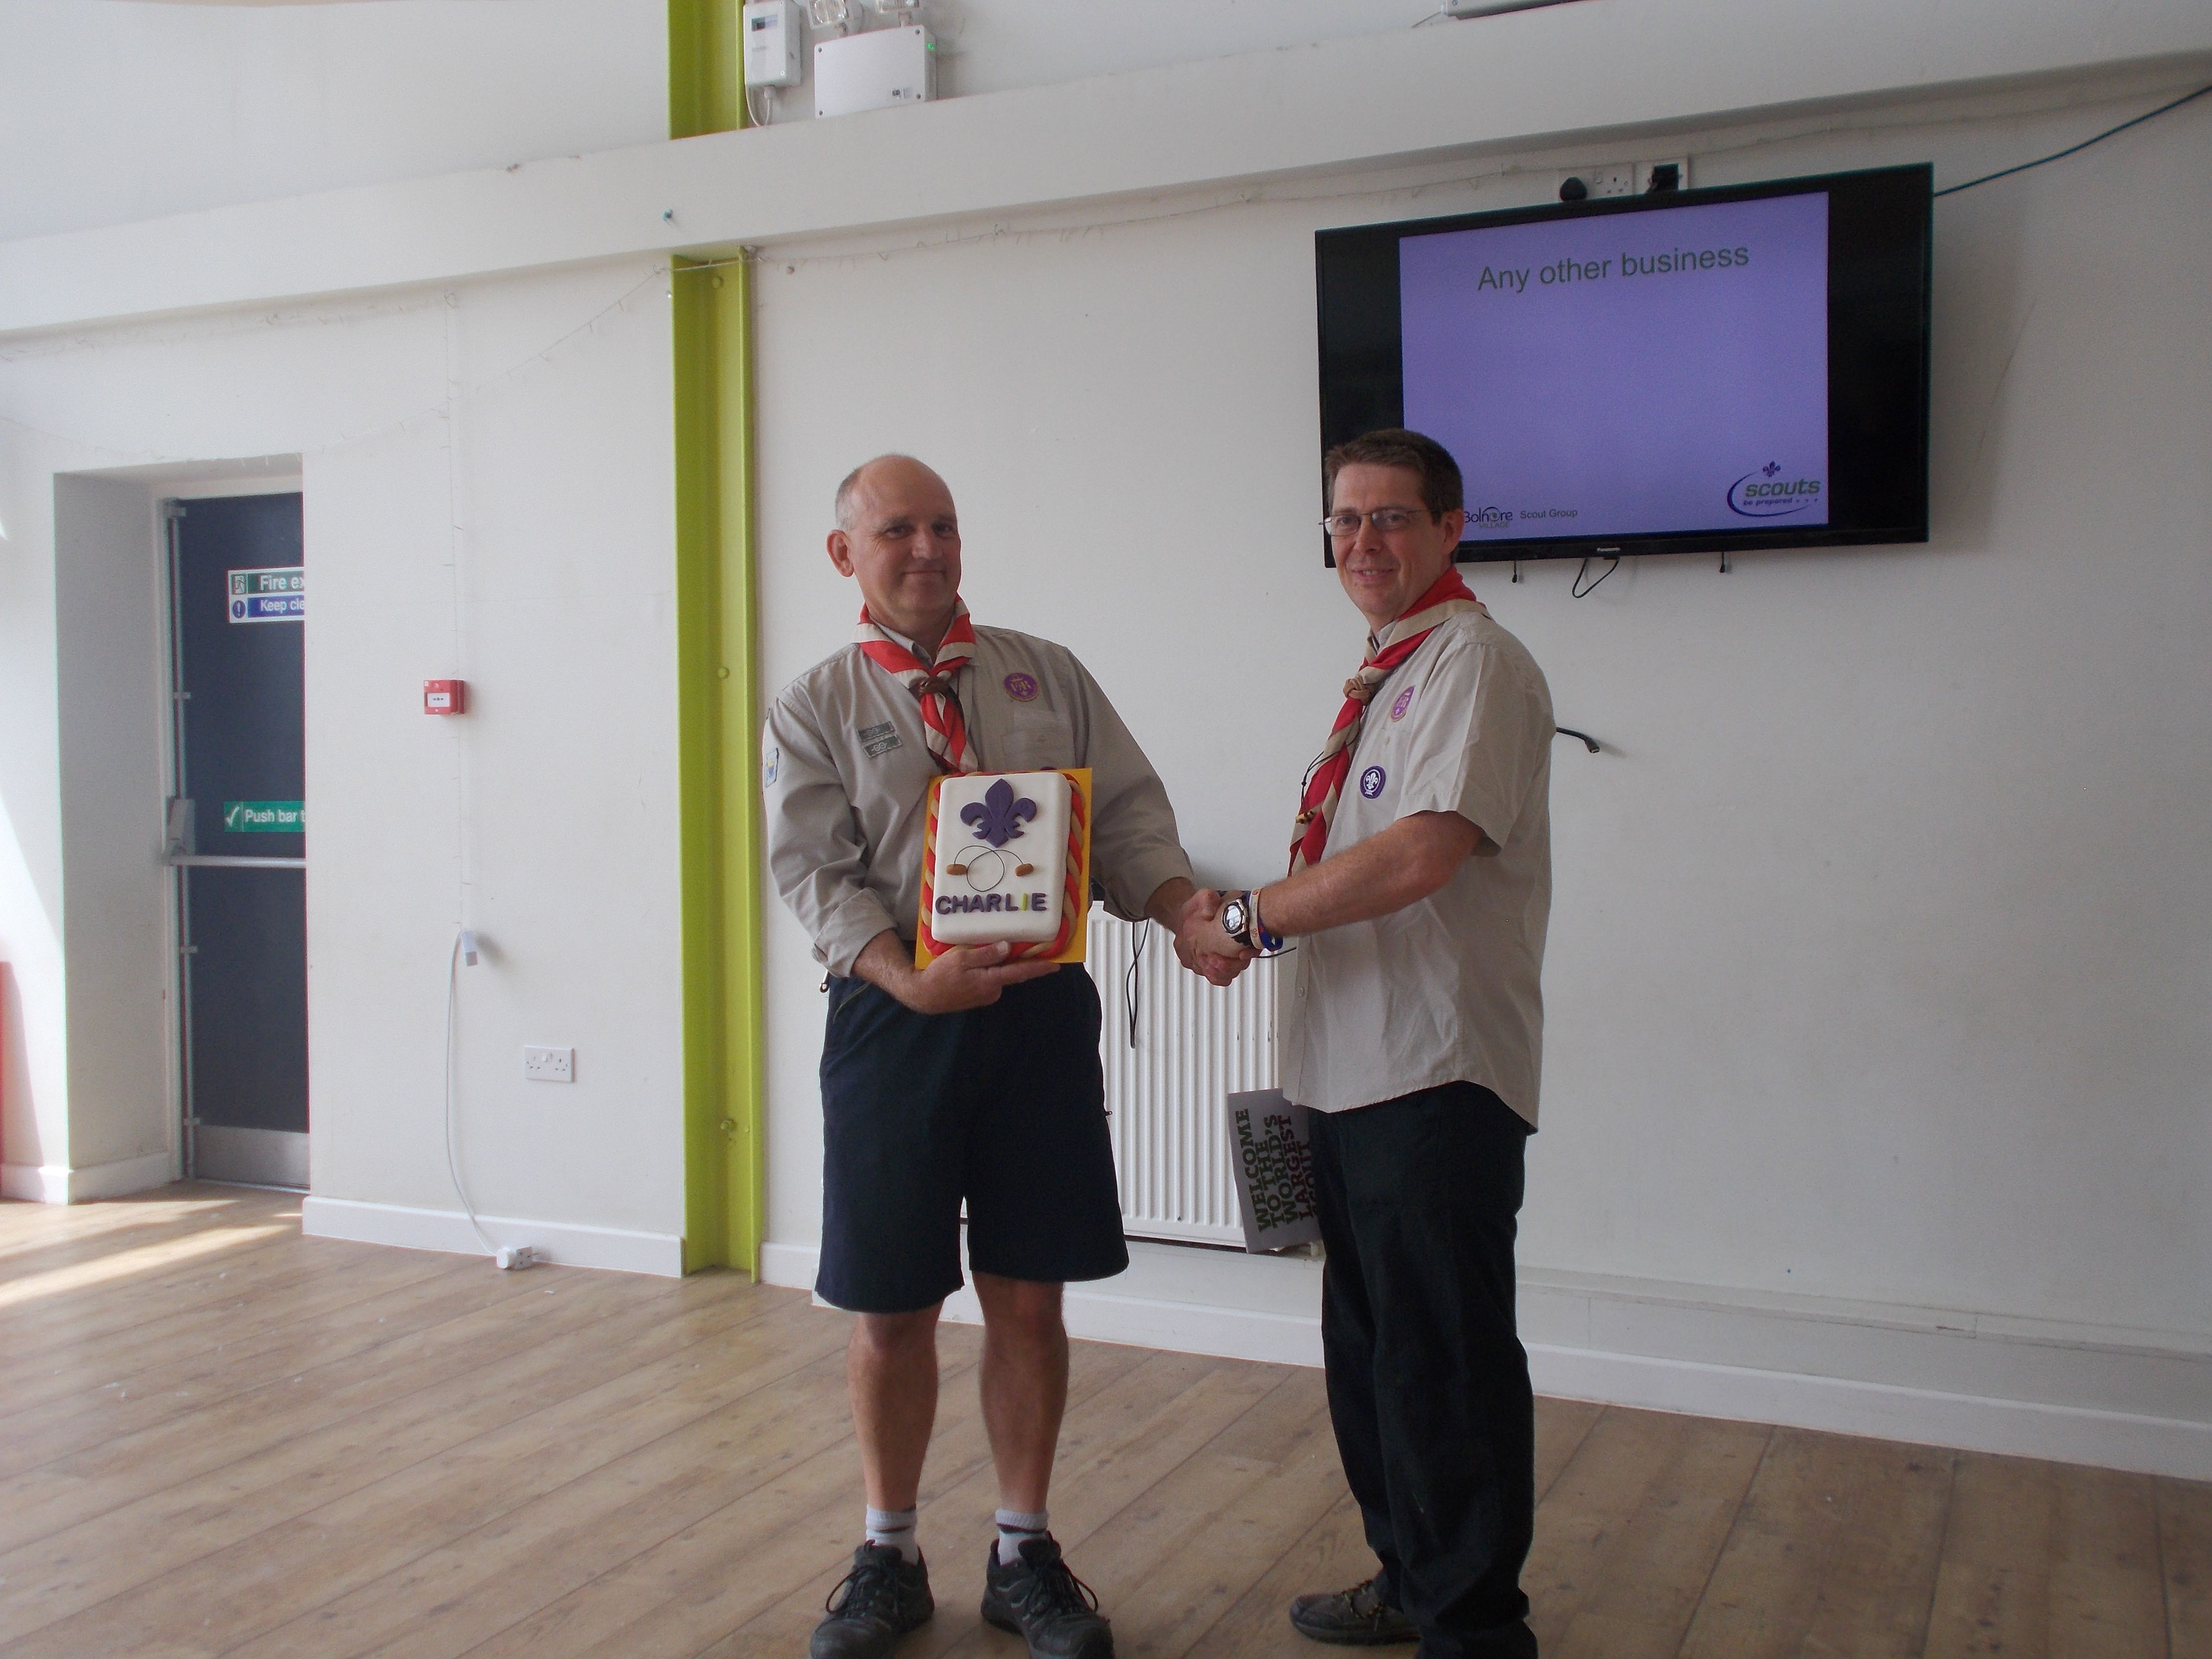 Charlie woodbadge